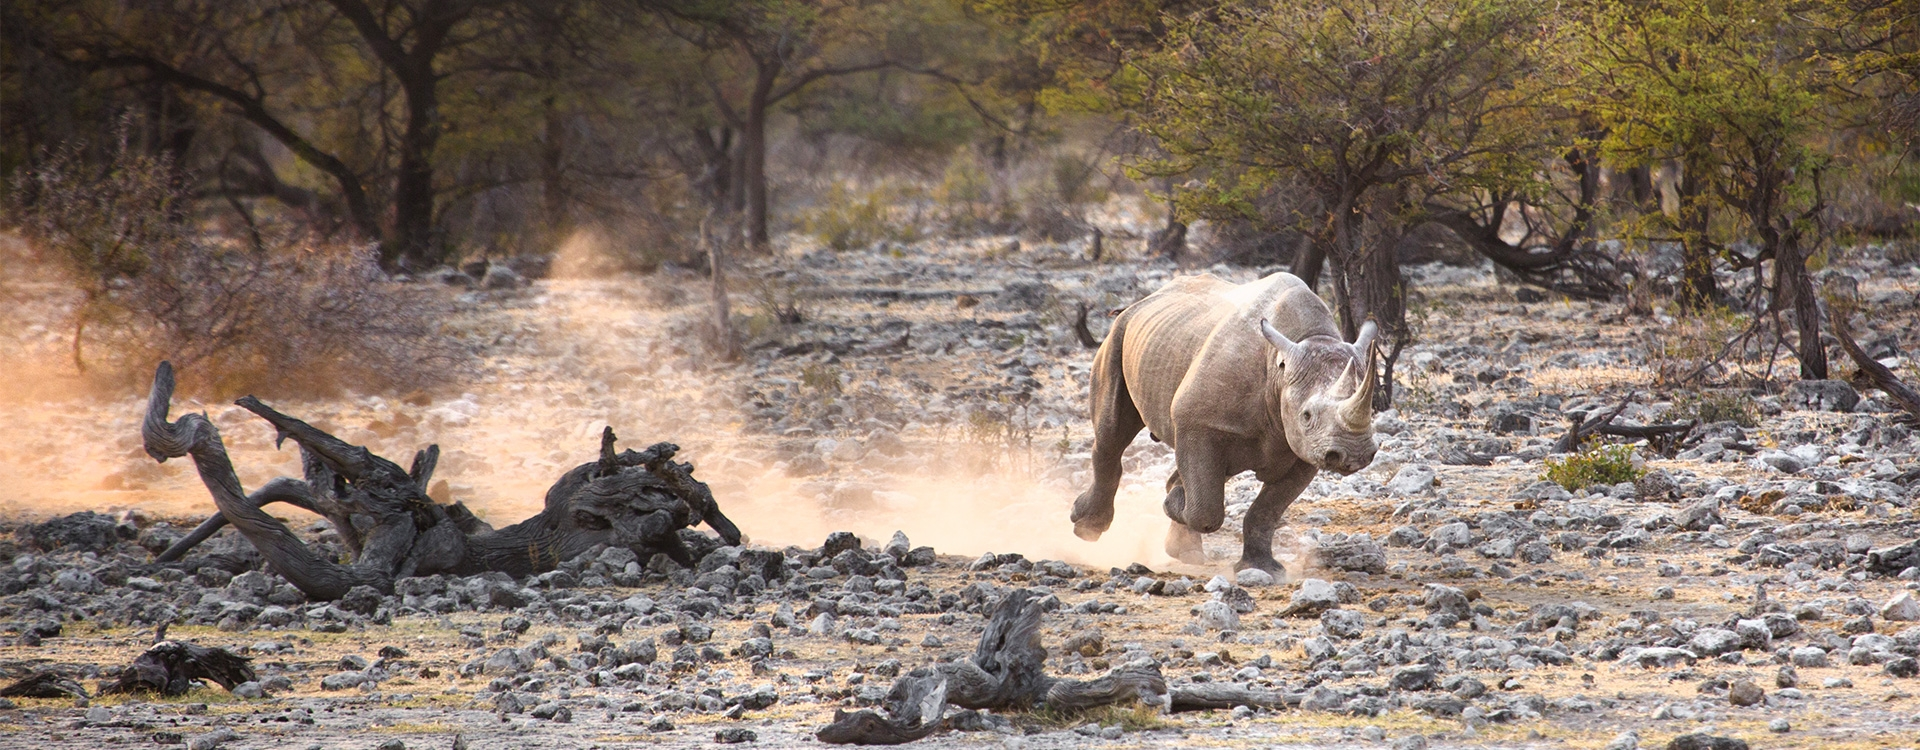 Black rhino population on the rise in Africa / C1-C2